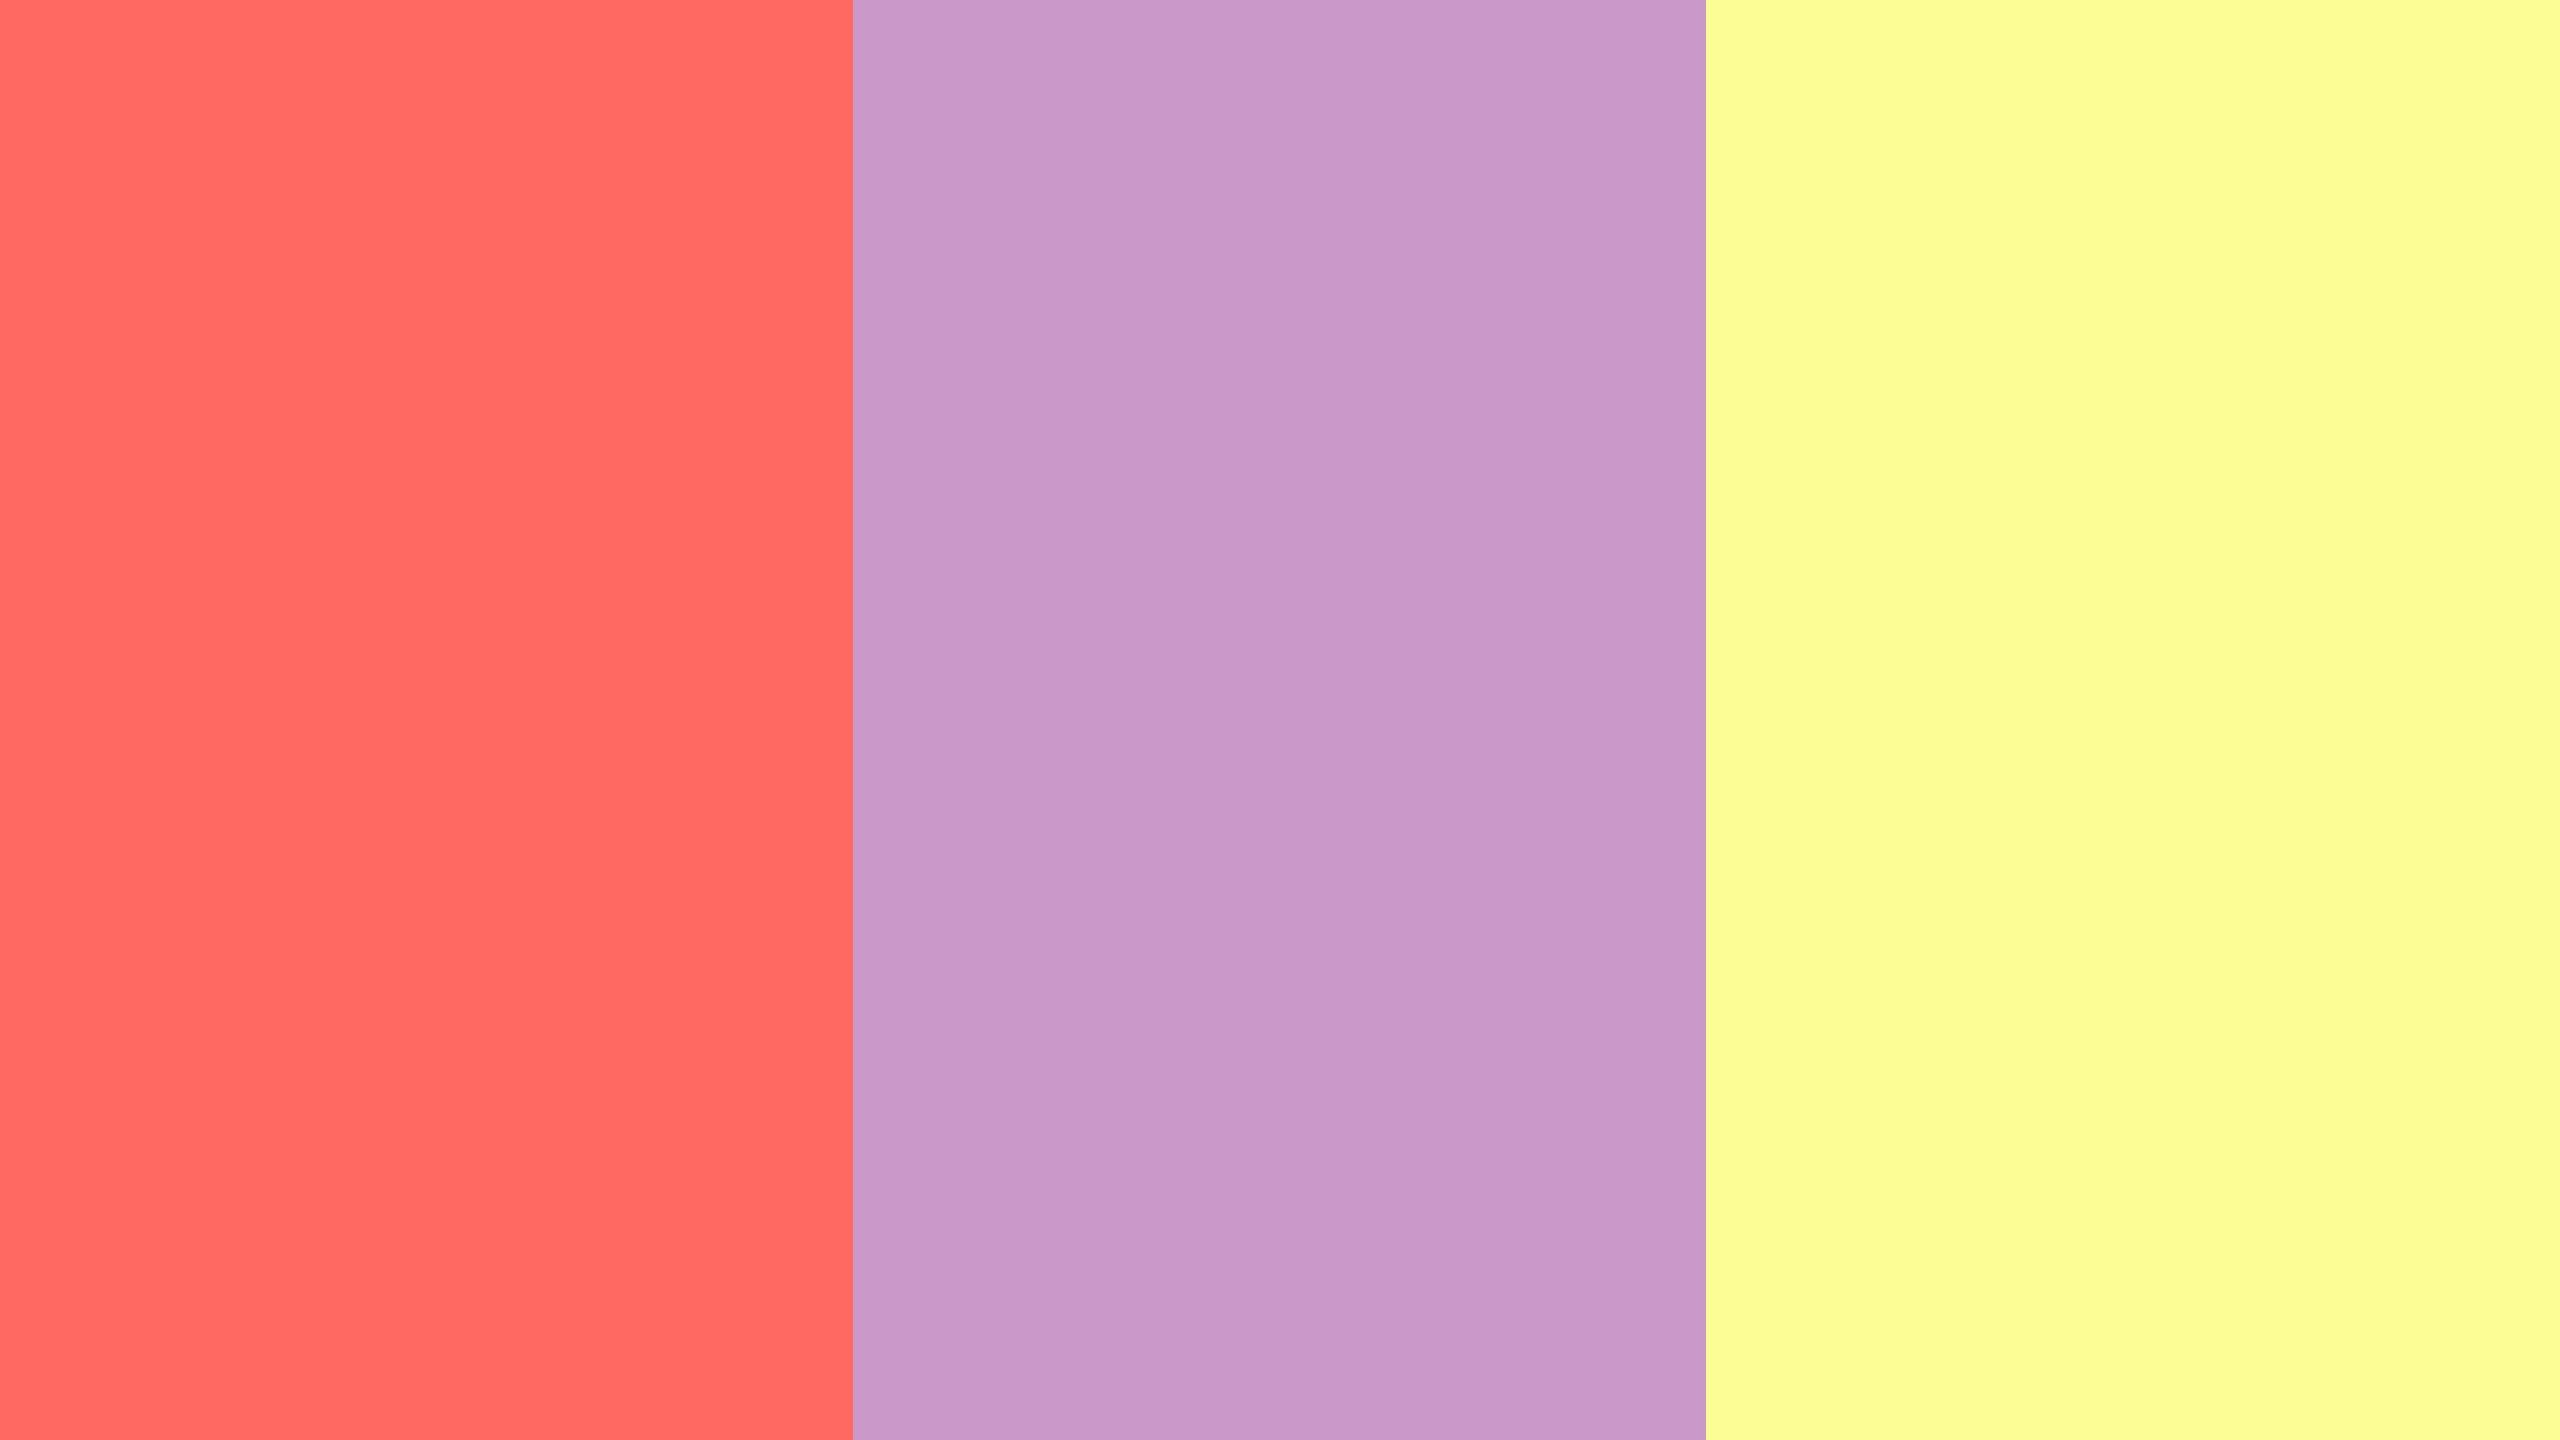 2560x1440 Pastel Red, Pastel Violet and Pastel Yellow Three Color ...